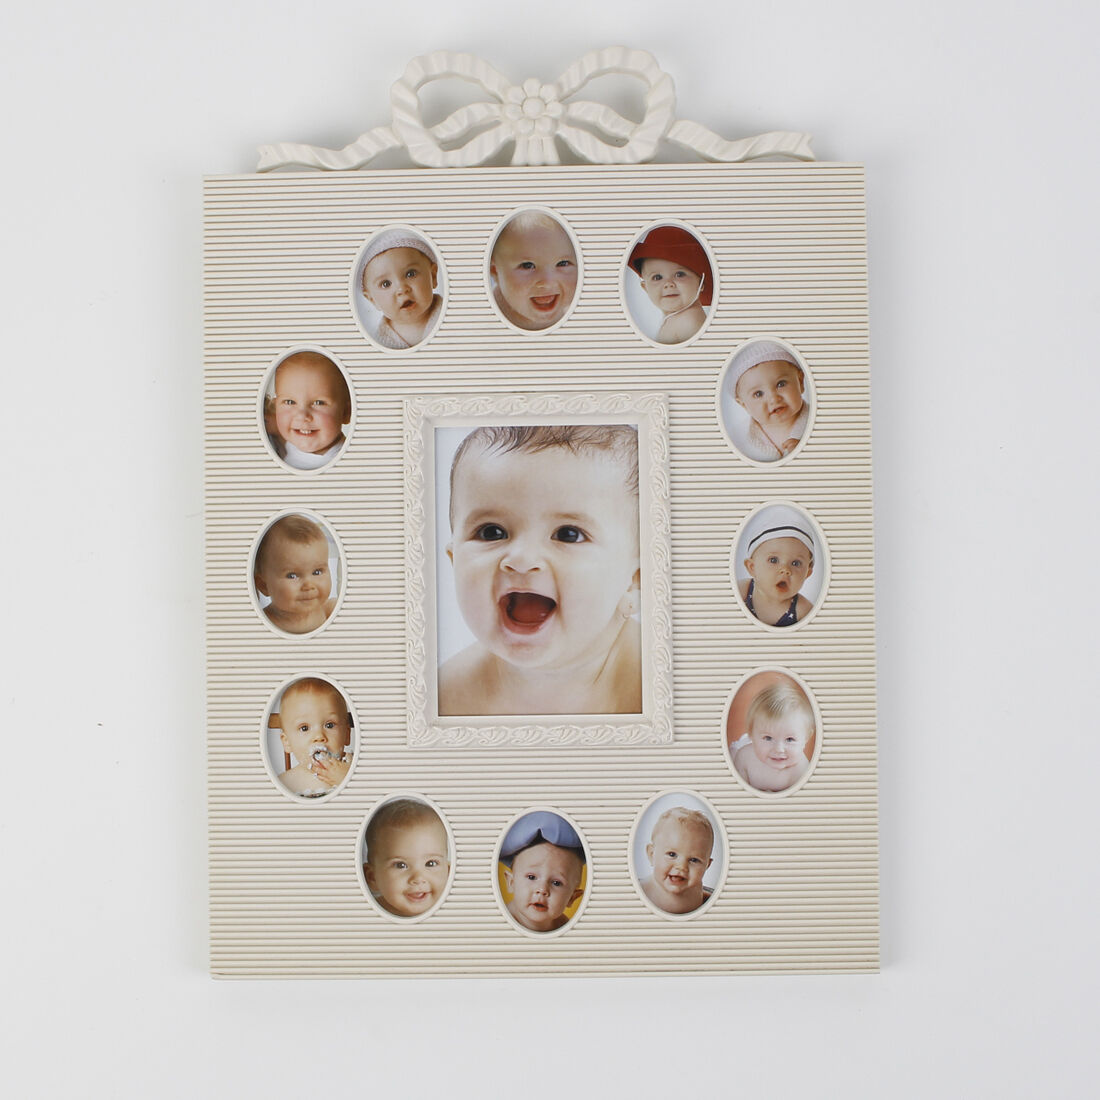 BABY MULTI PHOTO Picture Frame My First Year 12 Month Slots - $25.00 ...